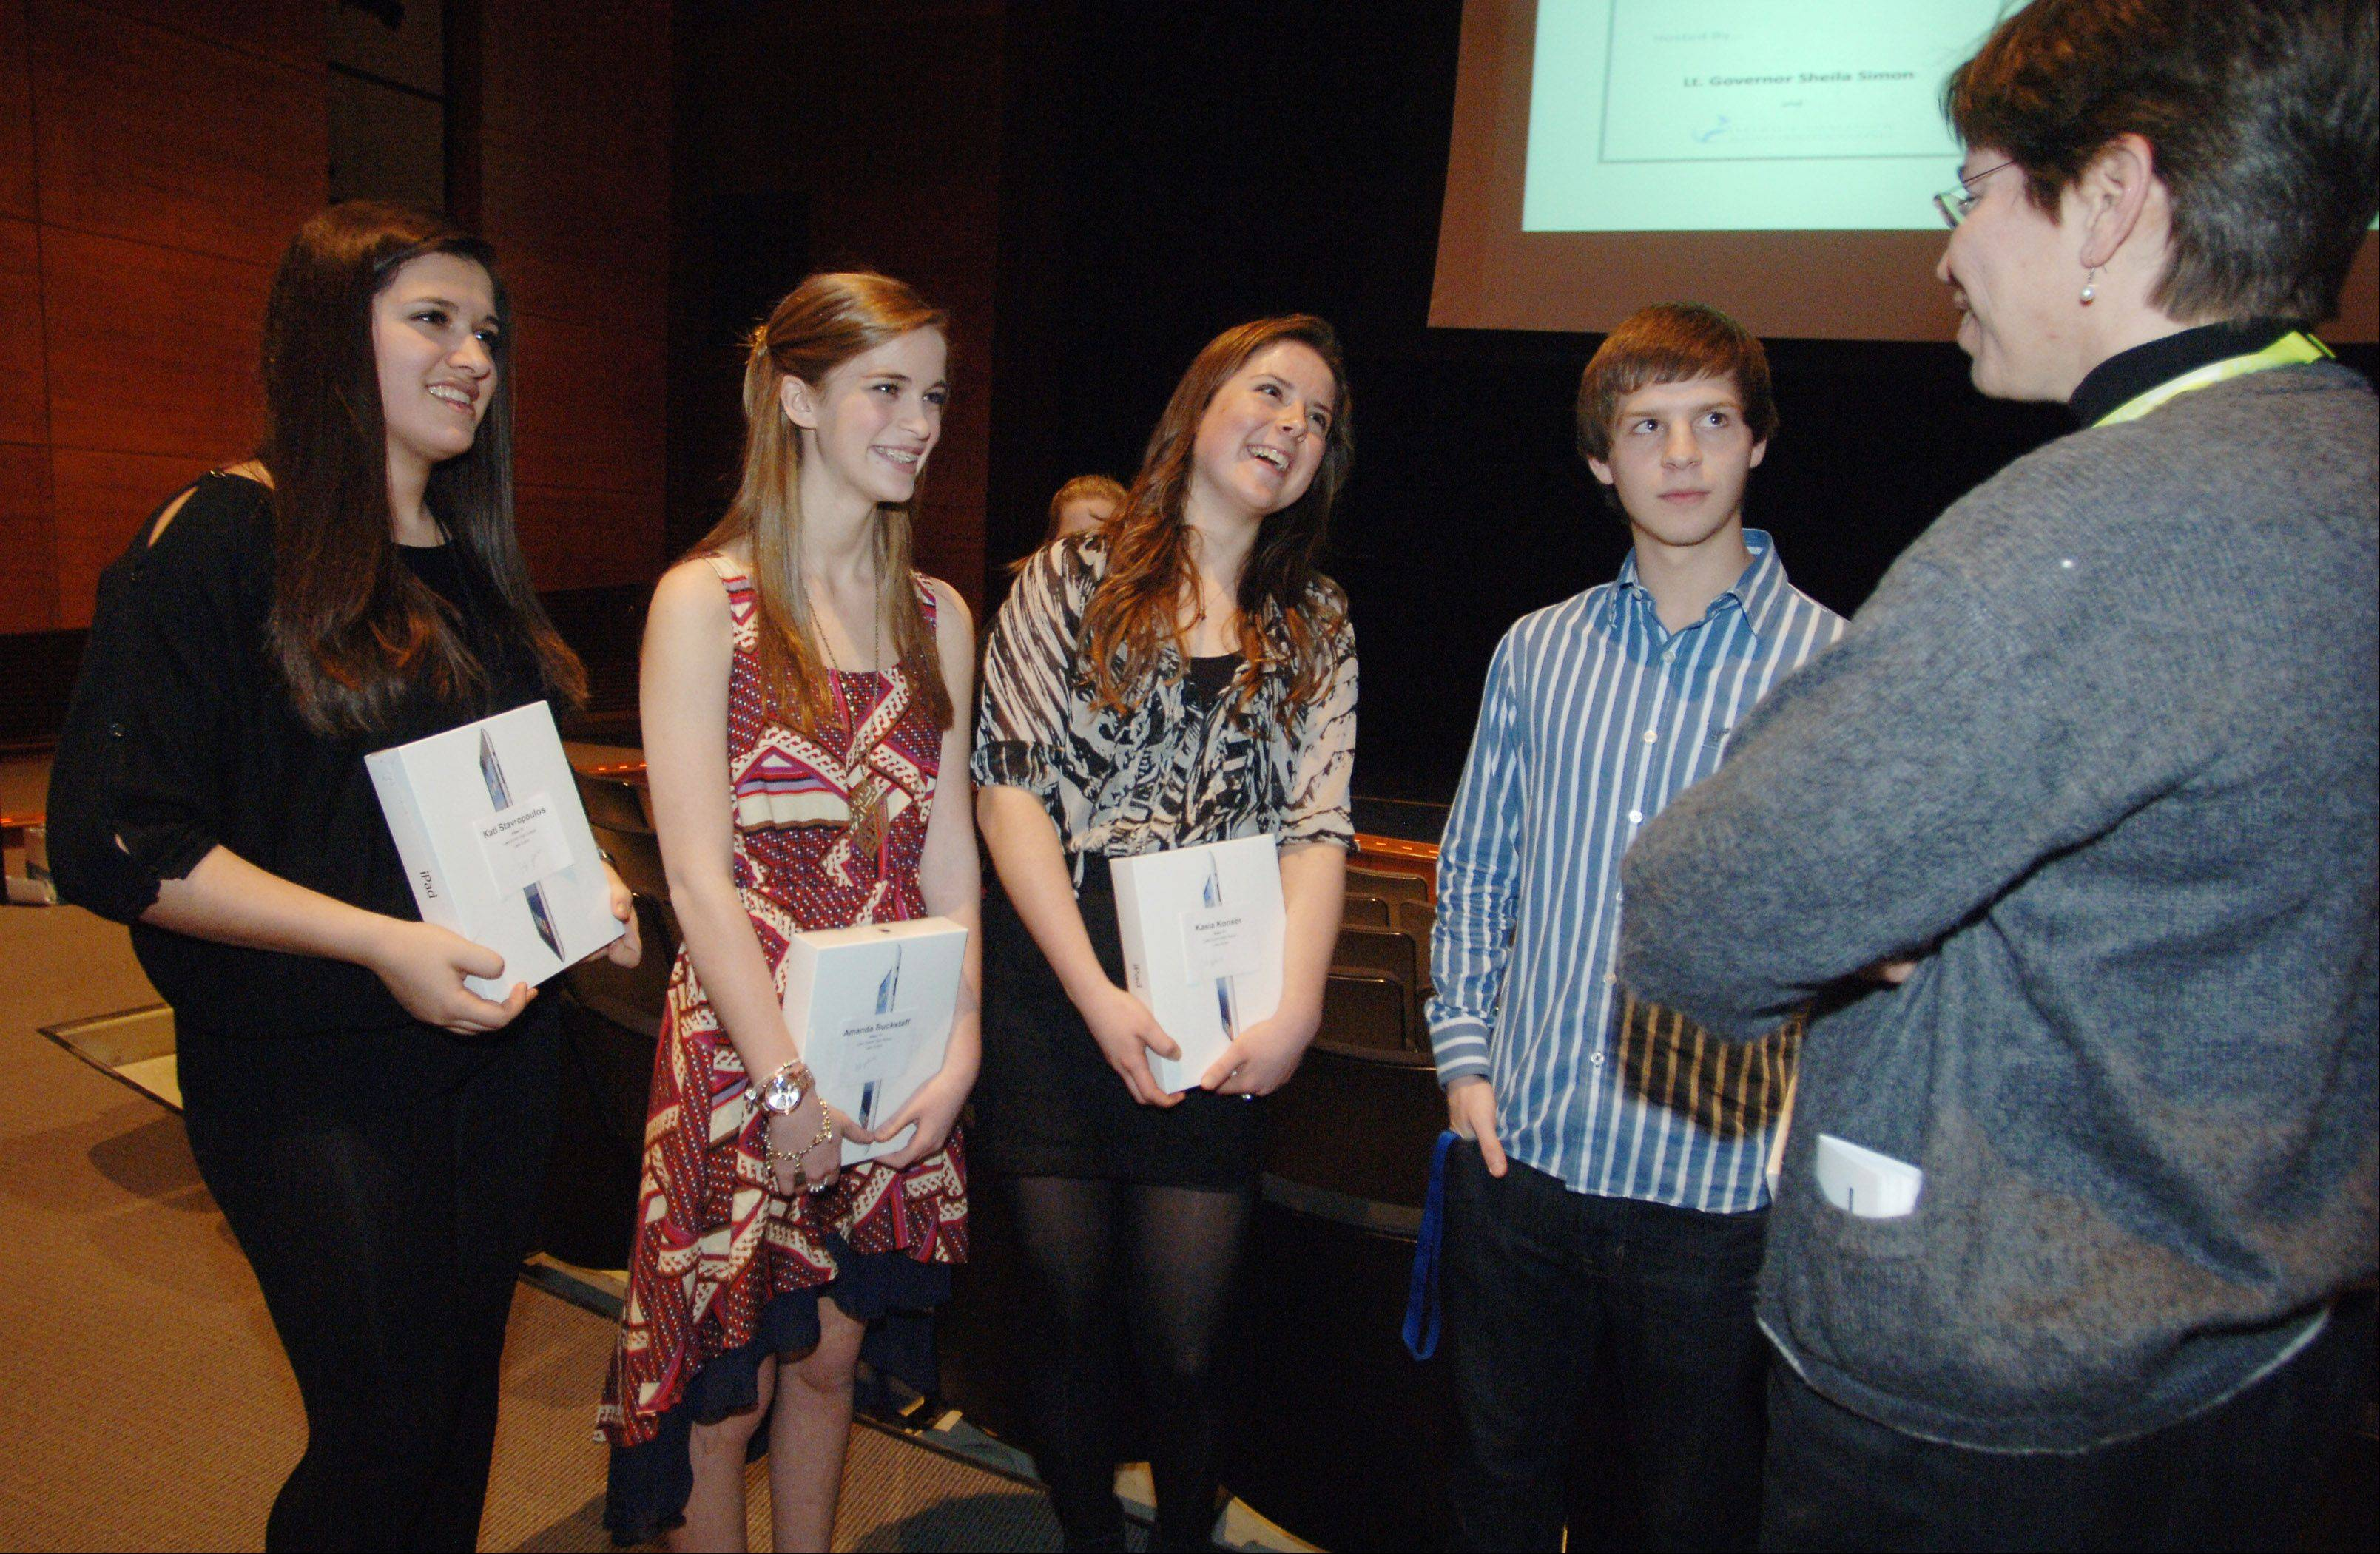 Lt. Governor Sheila Simon, right, chats with Lake Zurich High School students Kati Stavropoulos, left, Amanda Buckstaff, Kasia Konsor and Ian Hesch after they were honored Friday for winning the No More Dating Abuse Video Contest.